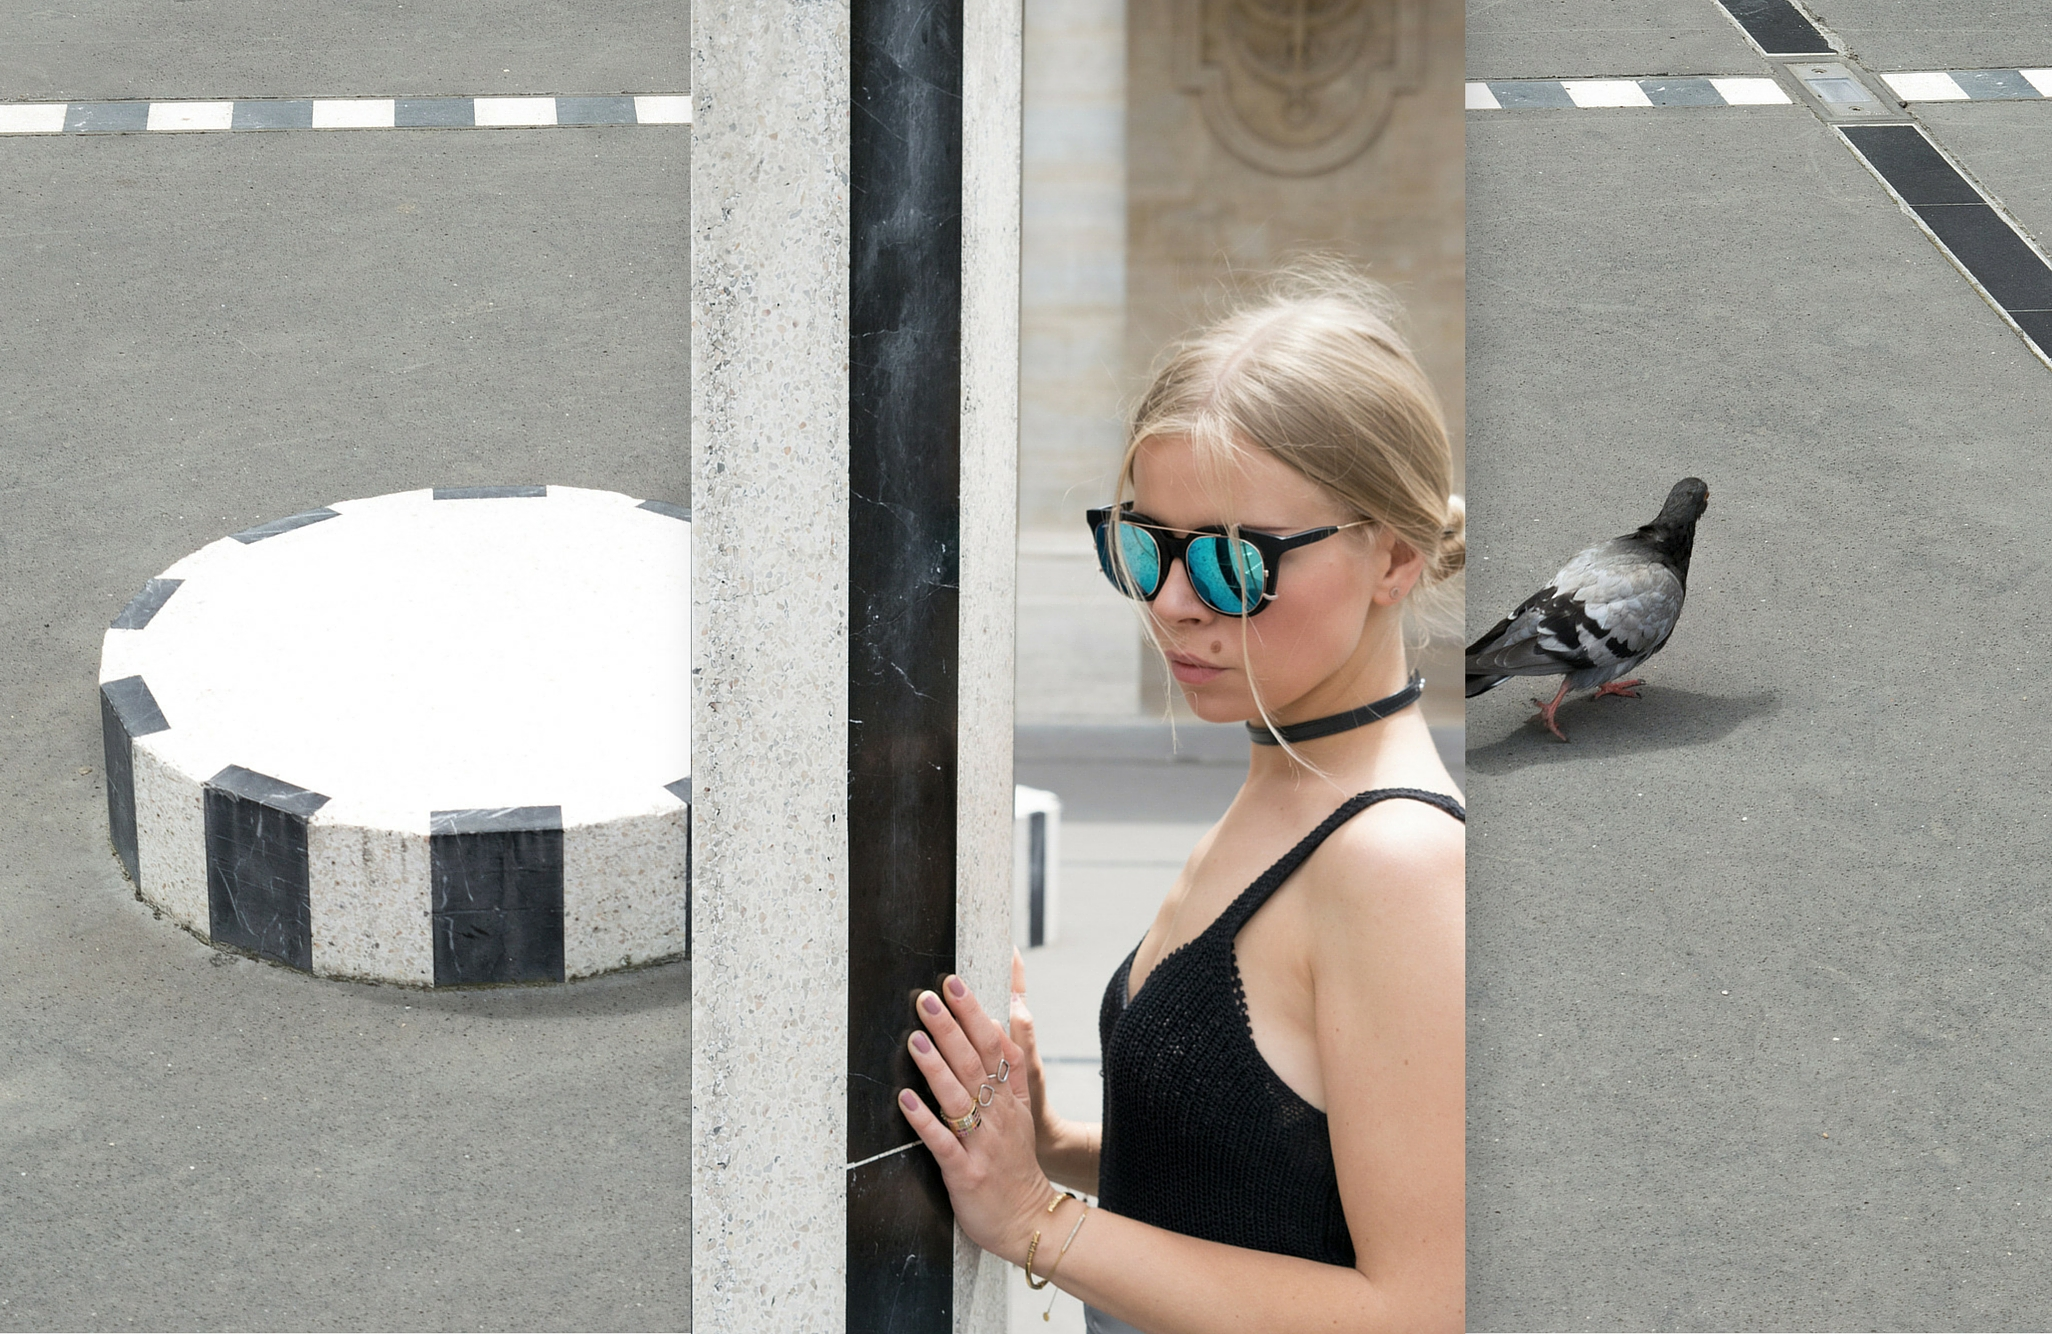 Dra clothing and lappel sunglasses wore by Olga pancenko on fashion blog aestheticallypleasing